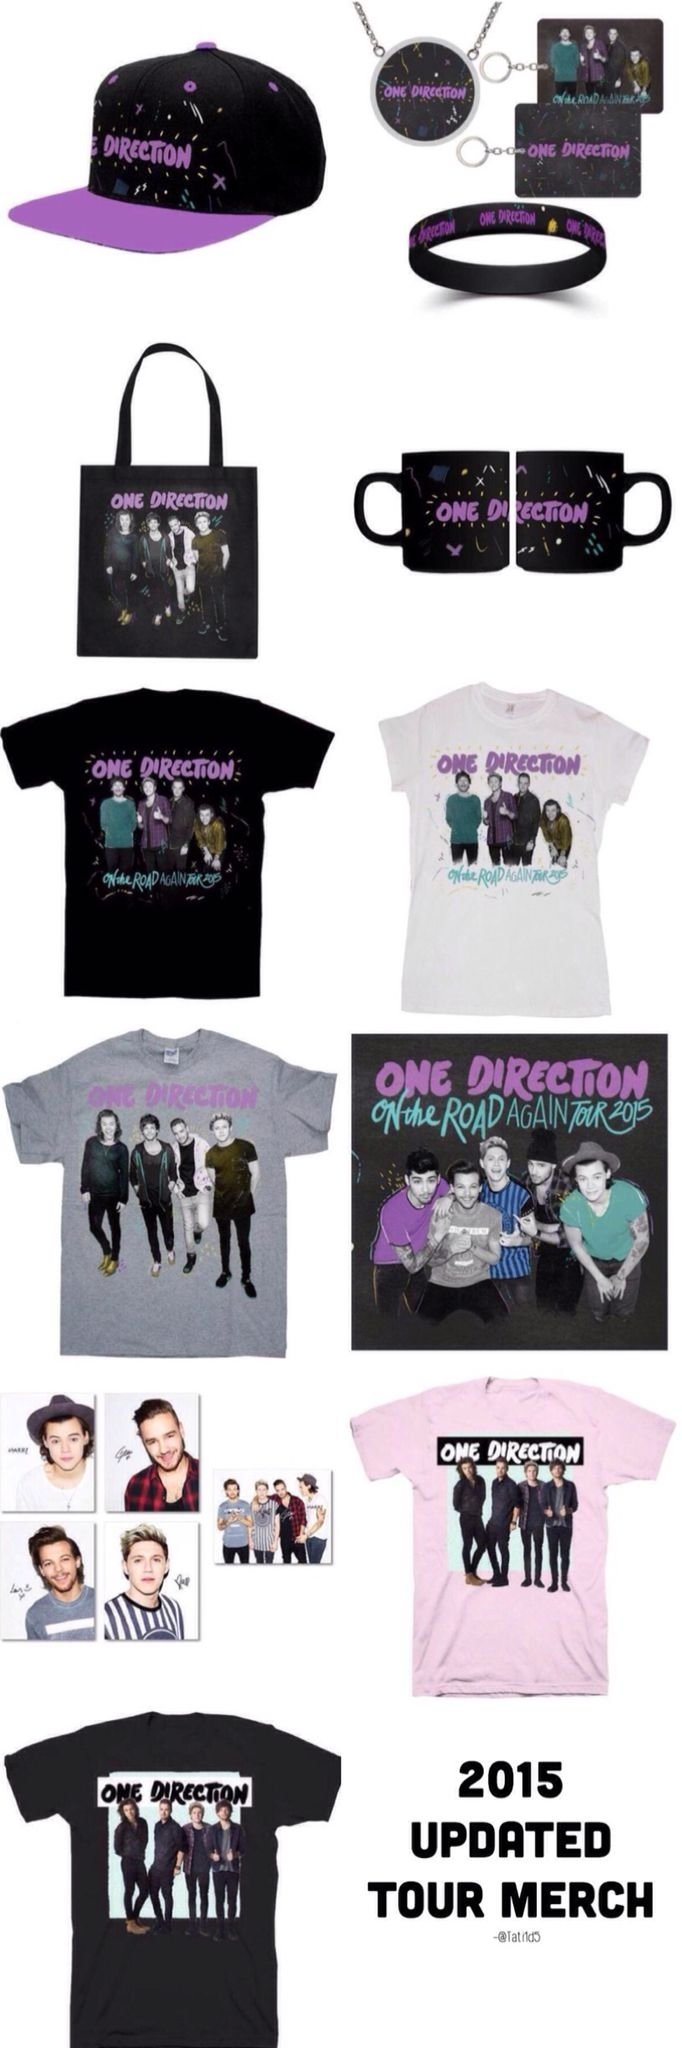 10 Elegant One Direction Shirt Ideas For Concert 12 best 1d needs images on pinterest one direction shirts clothes 2020